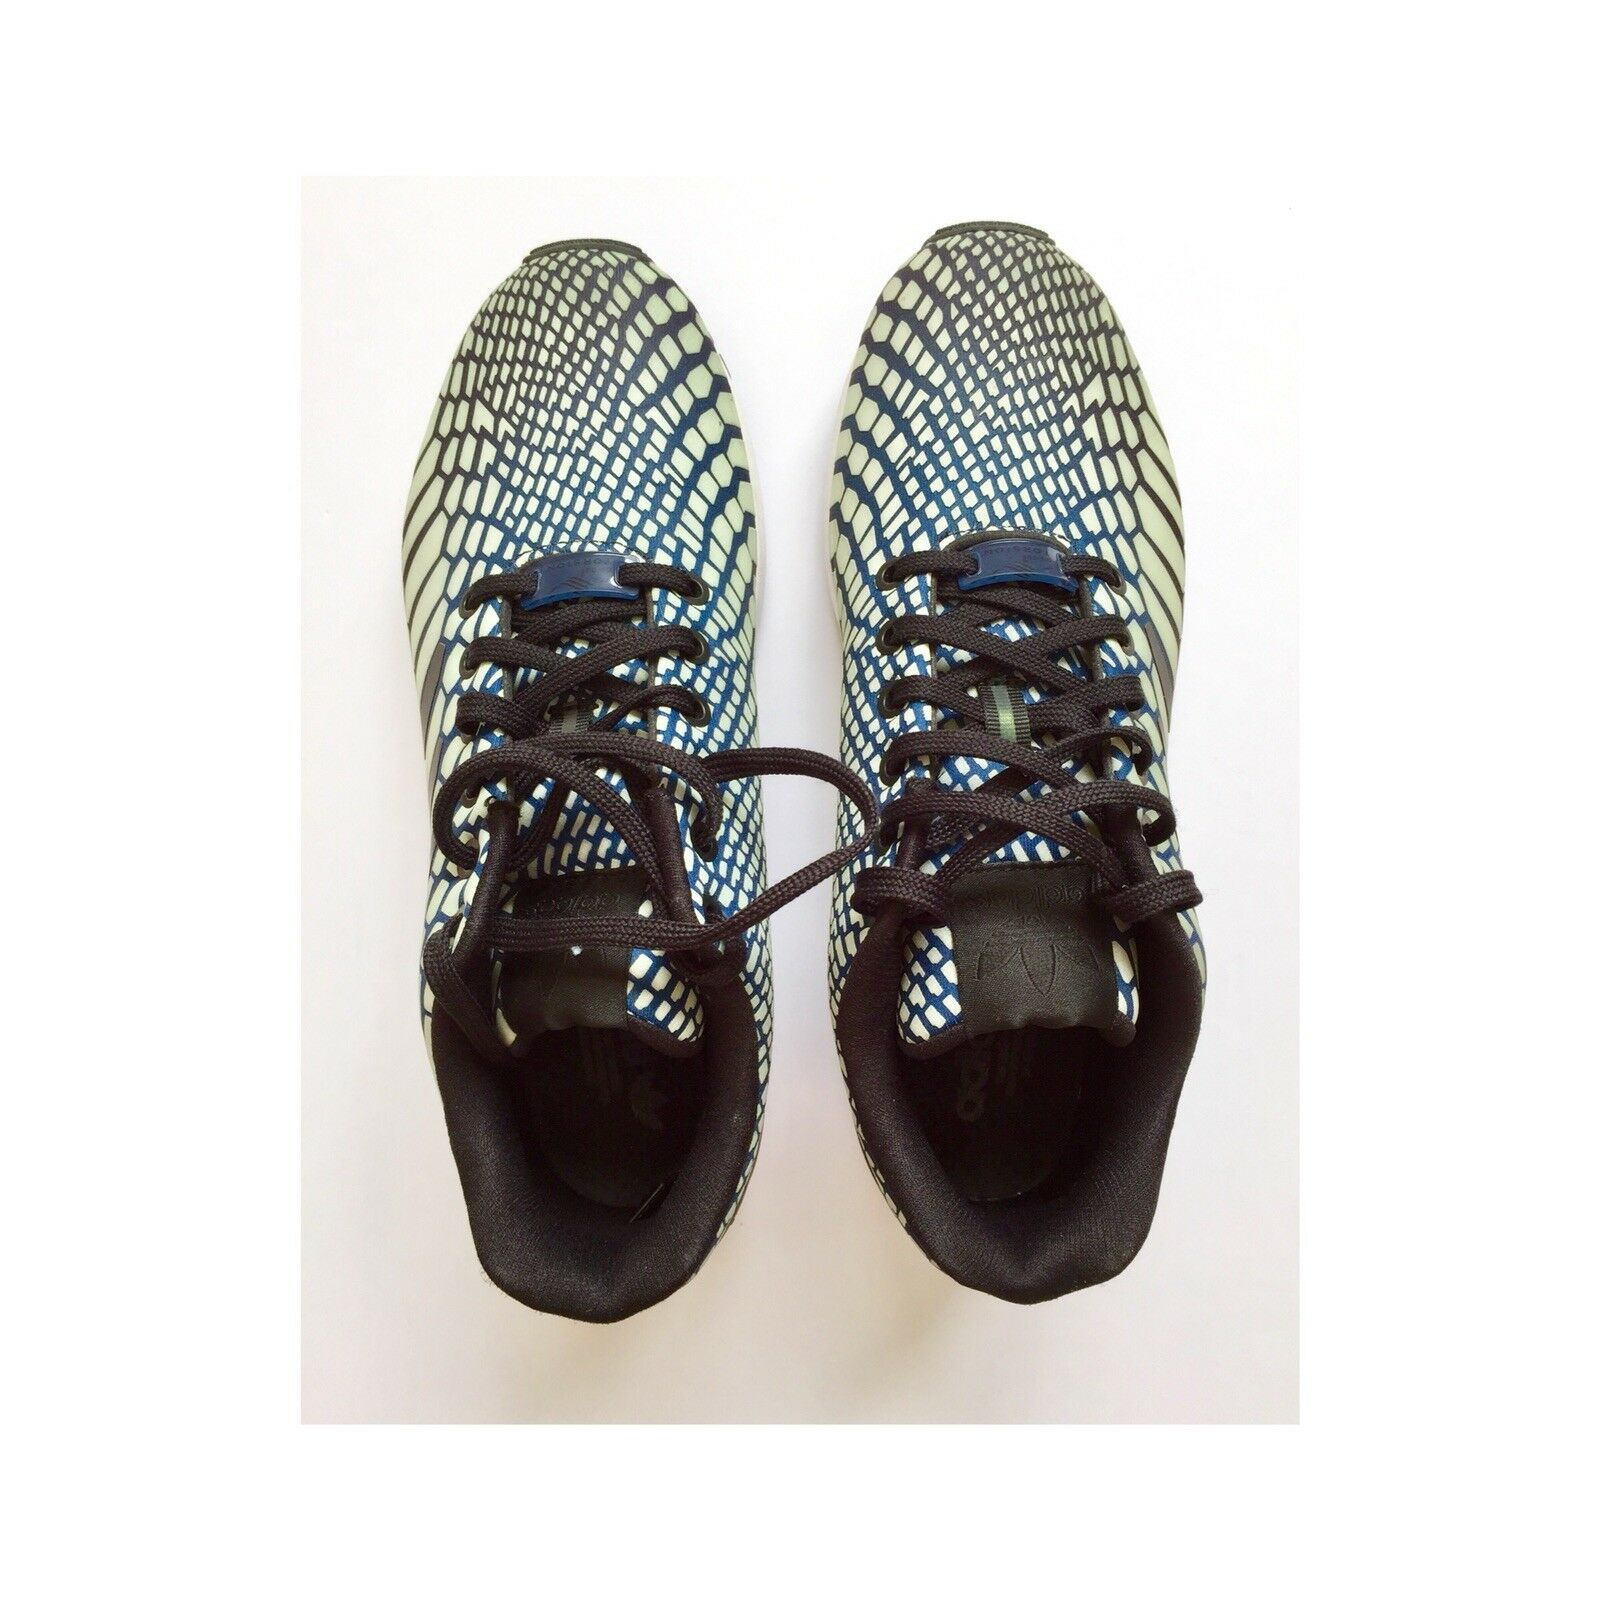 Adidas zx flux shoes shoes shoes In Size 7.5 373a93